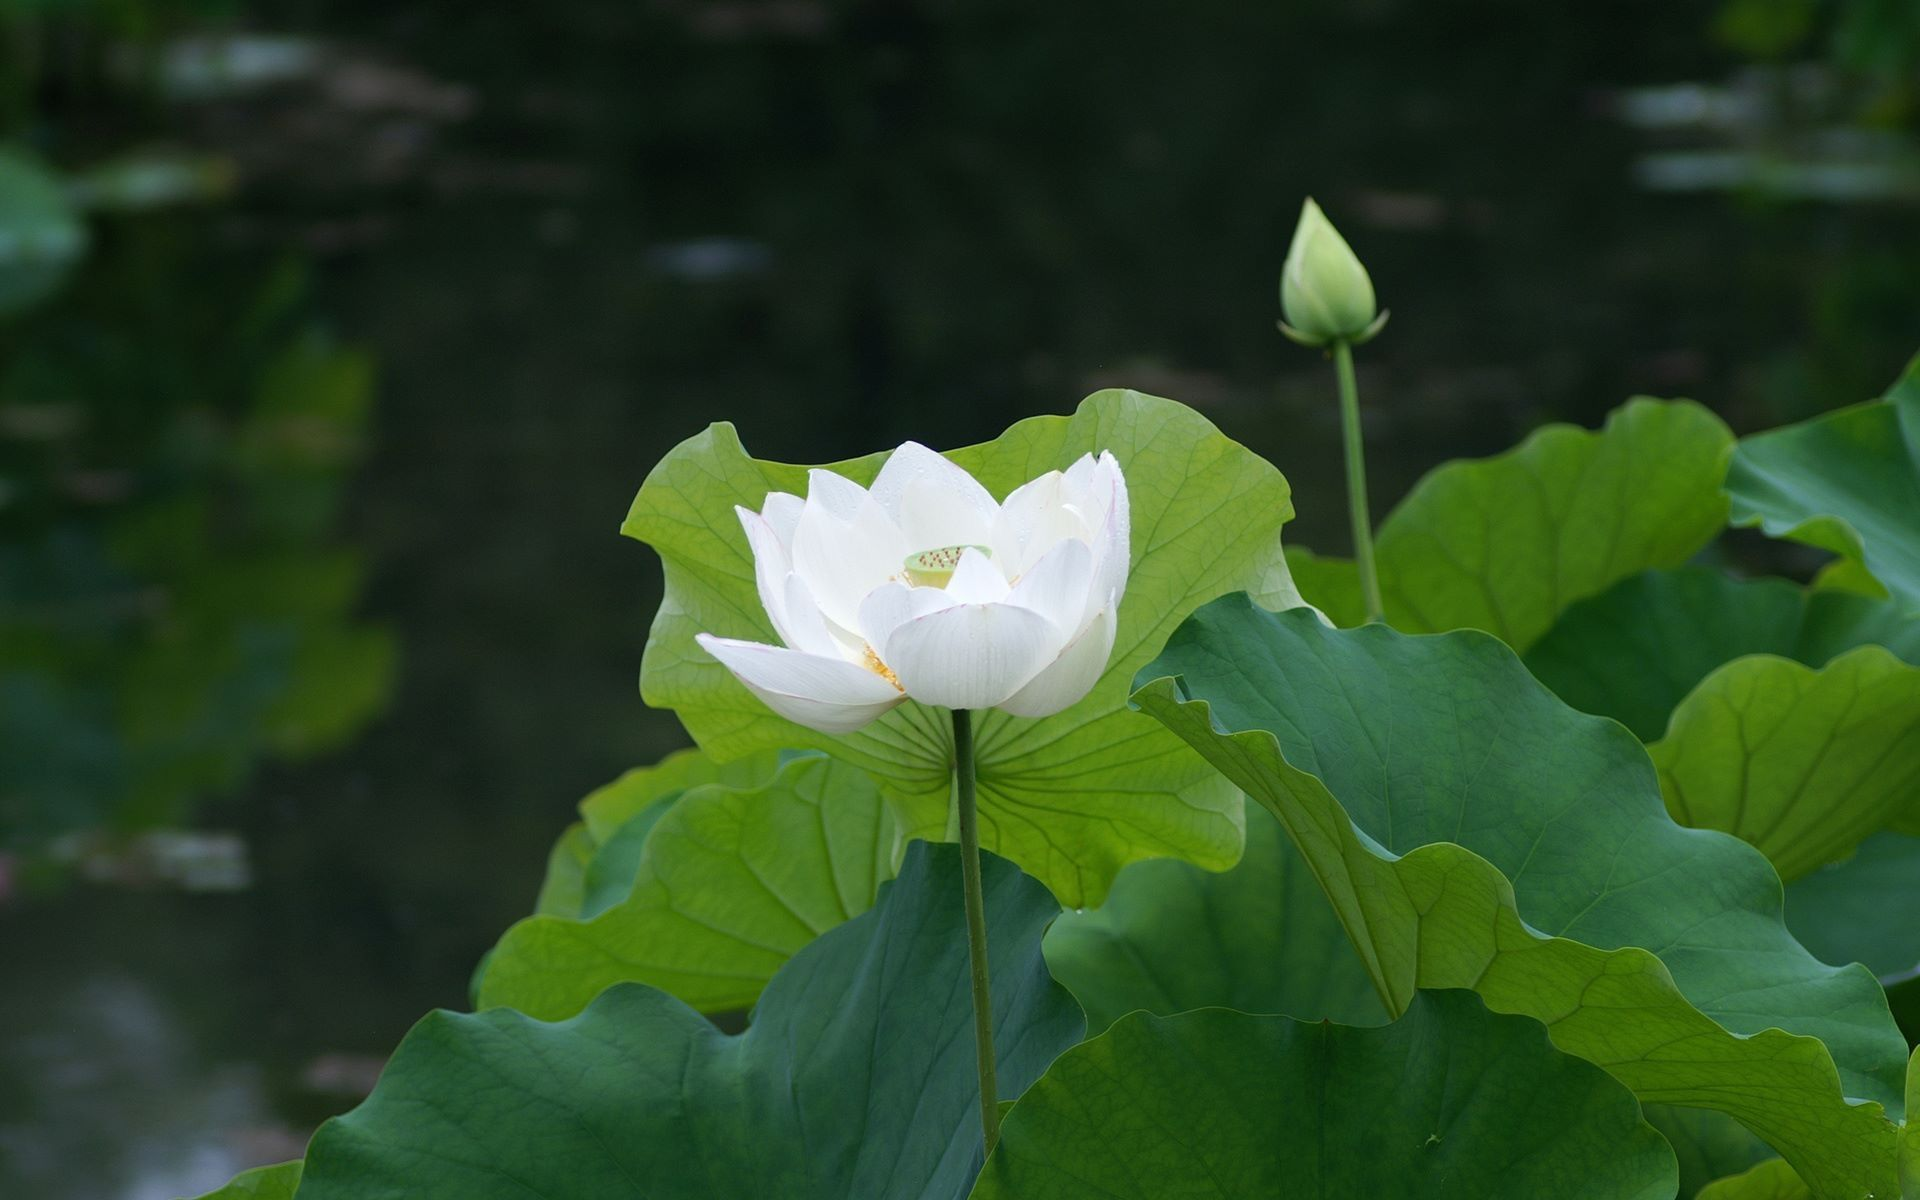 Pin By Ed On Photography In 2018 Pinterest White Lotus Flower